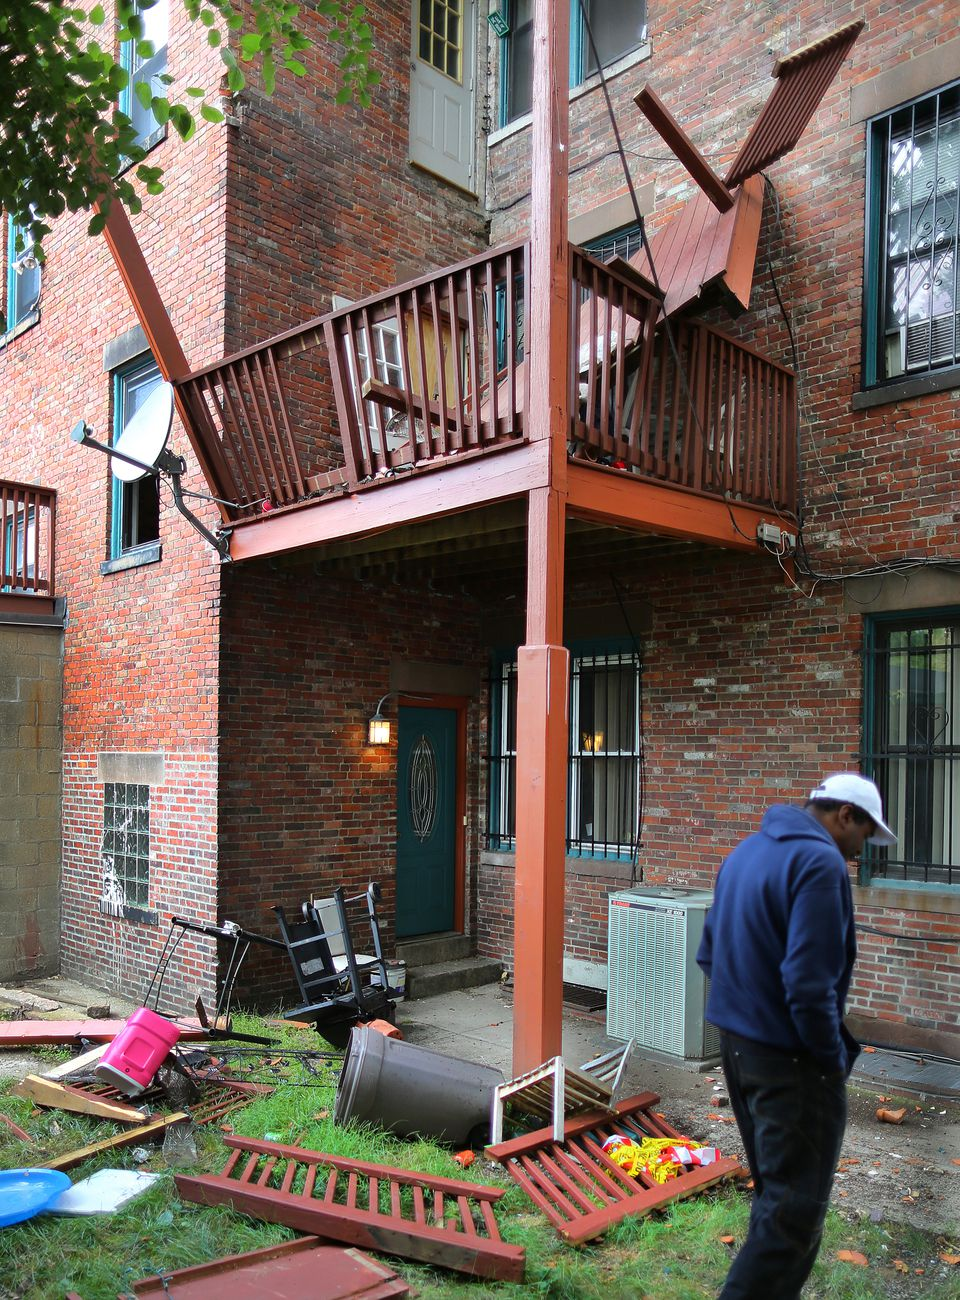 A Museum of Fine Arts student and 11 others were injured after this illegal third floor deck in Mission Hill collapsed. The city later cited the property owner.